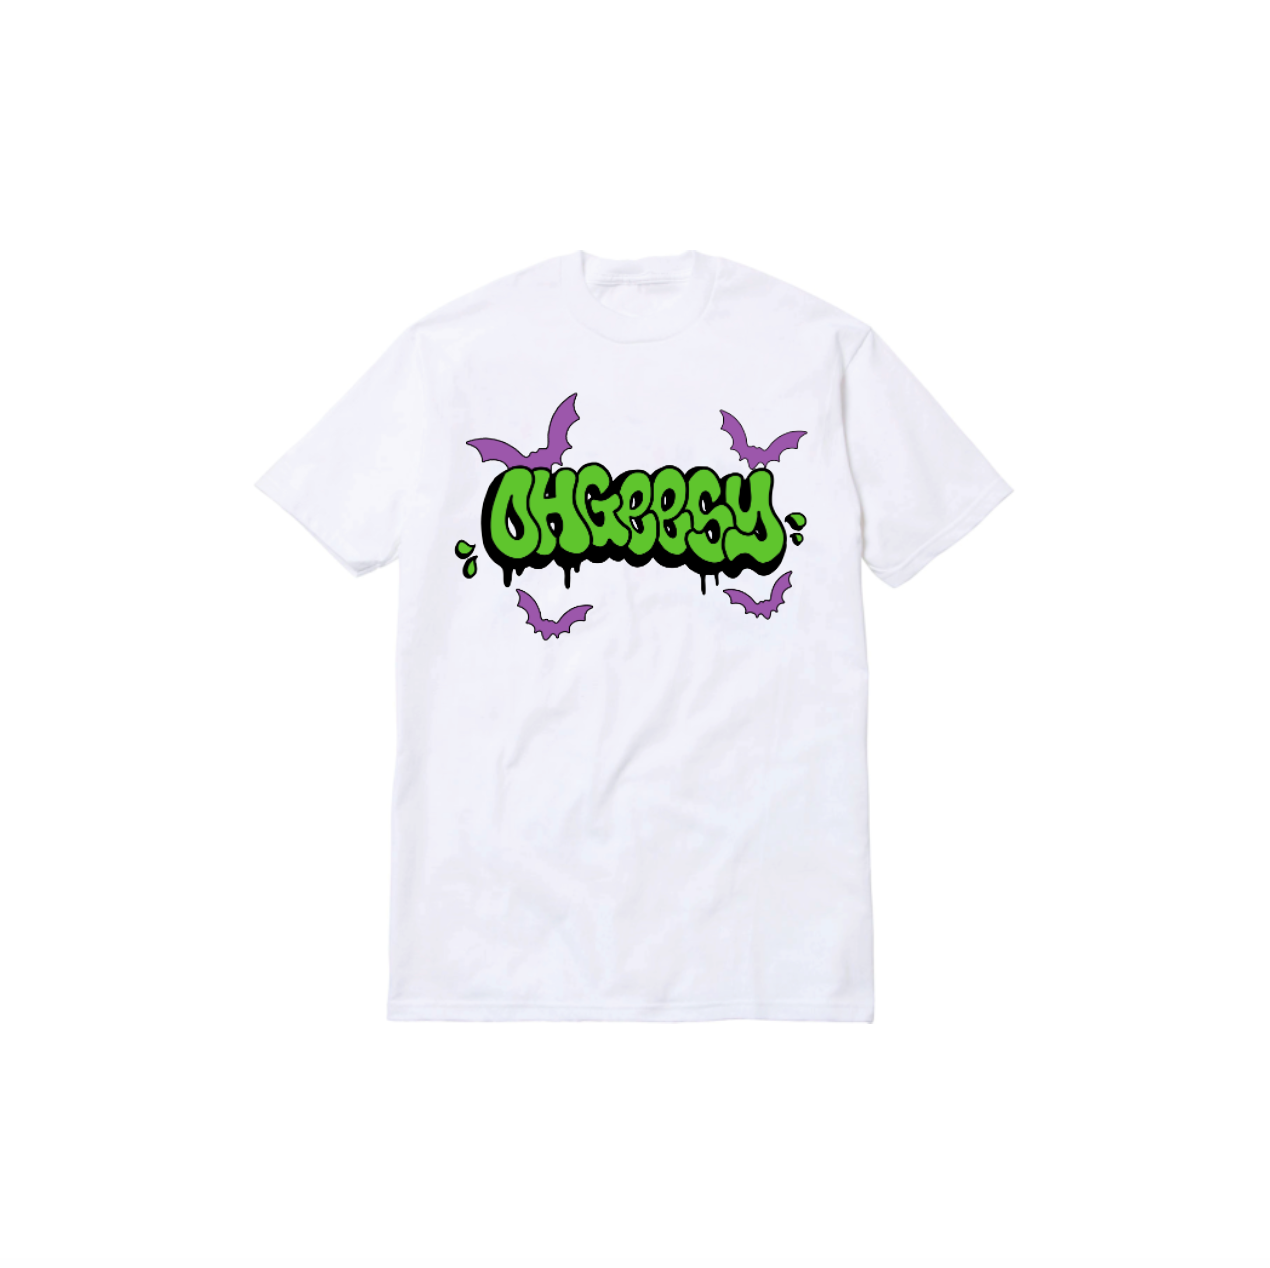 HAUNTED THROWIE TEE: WHITE